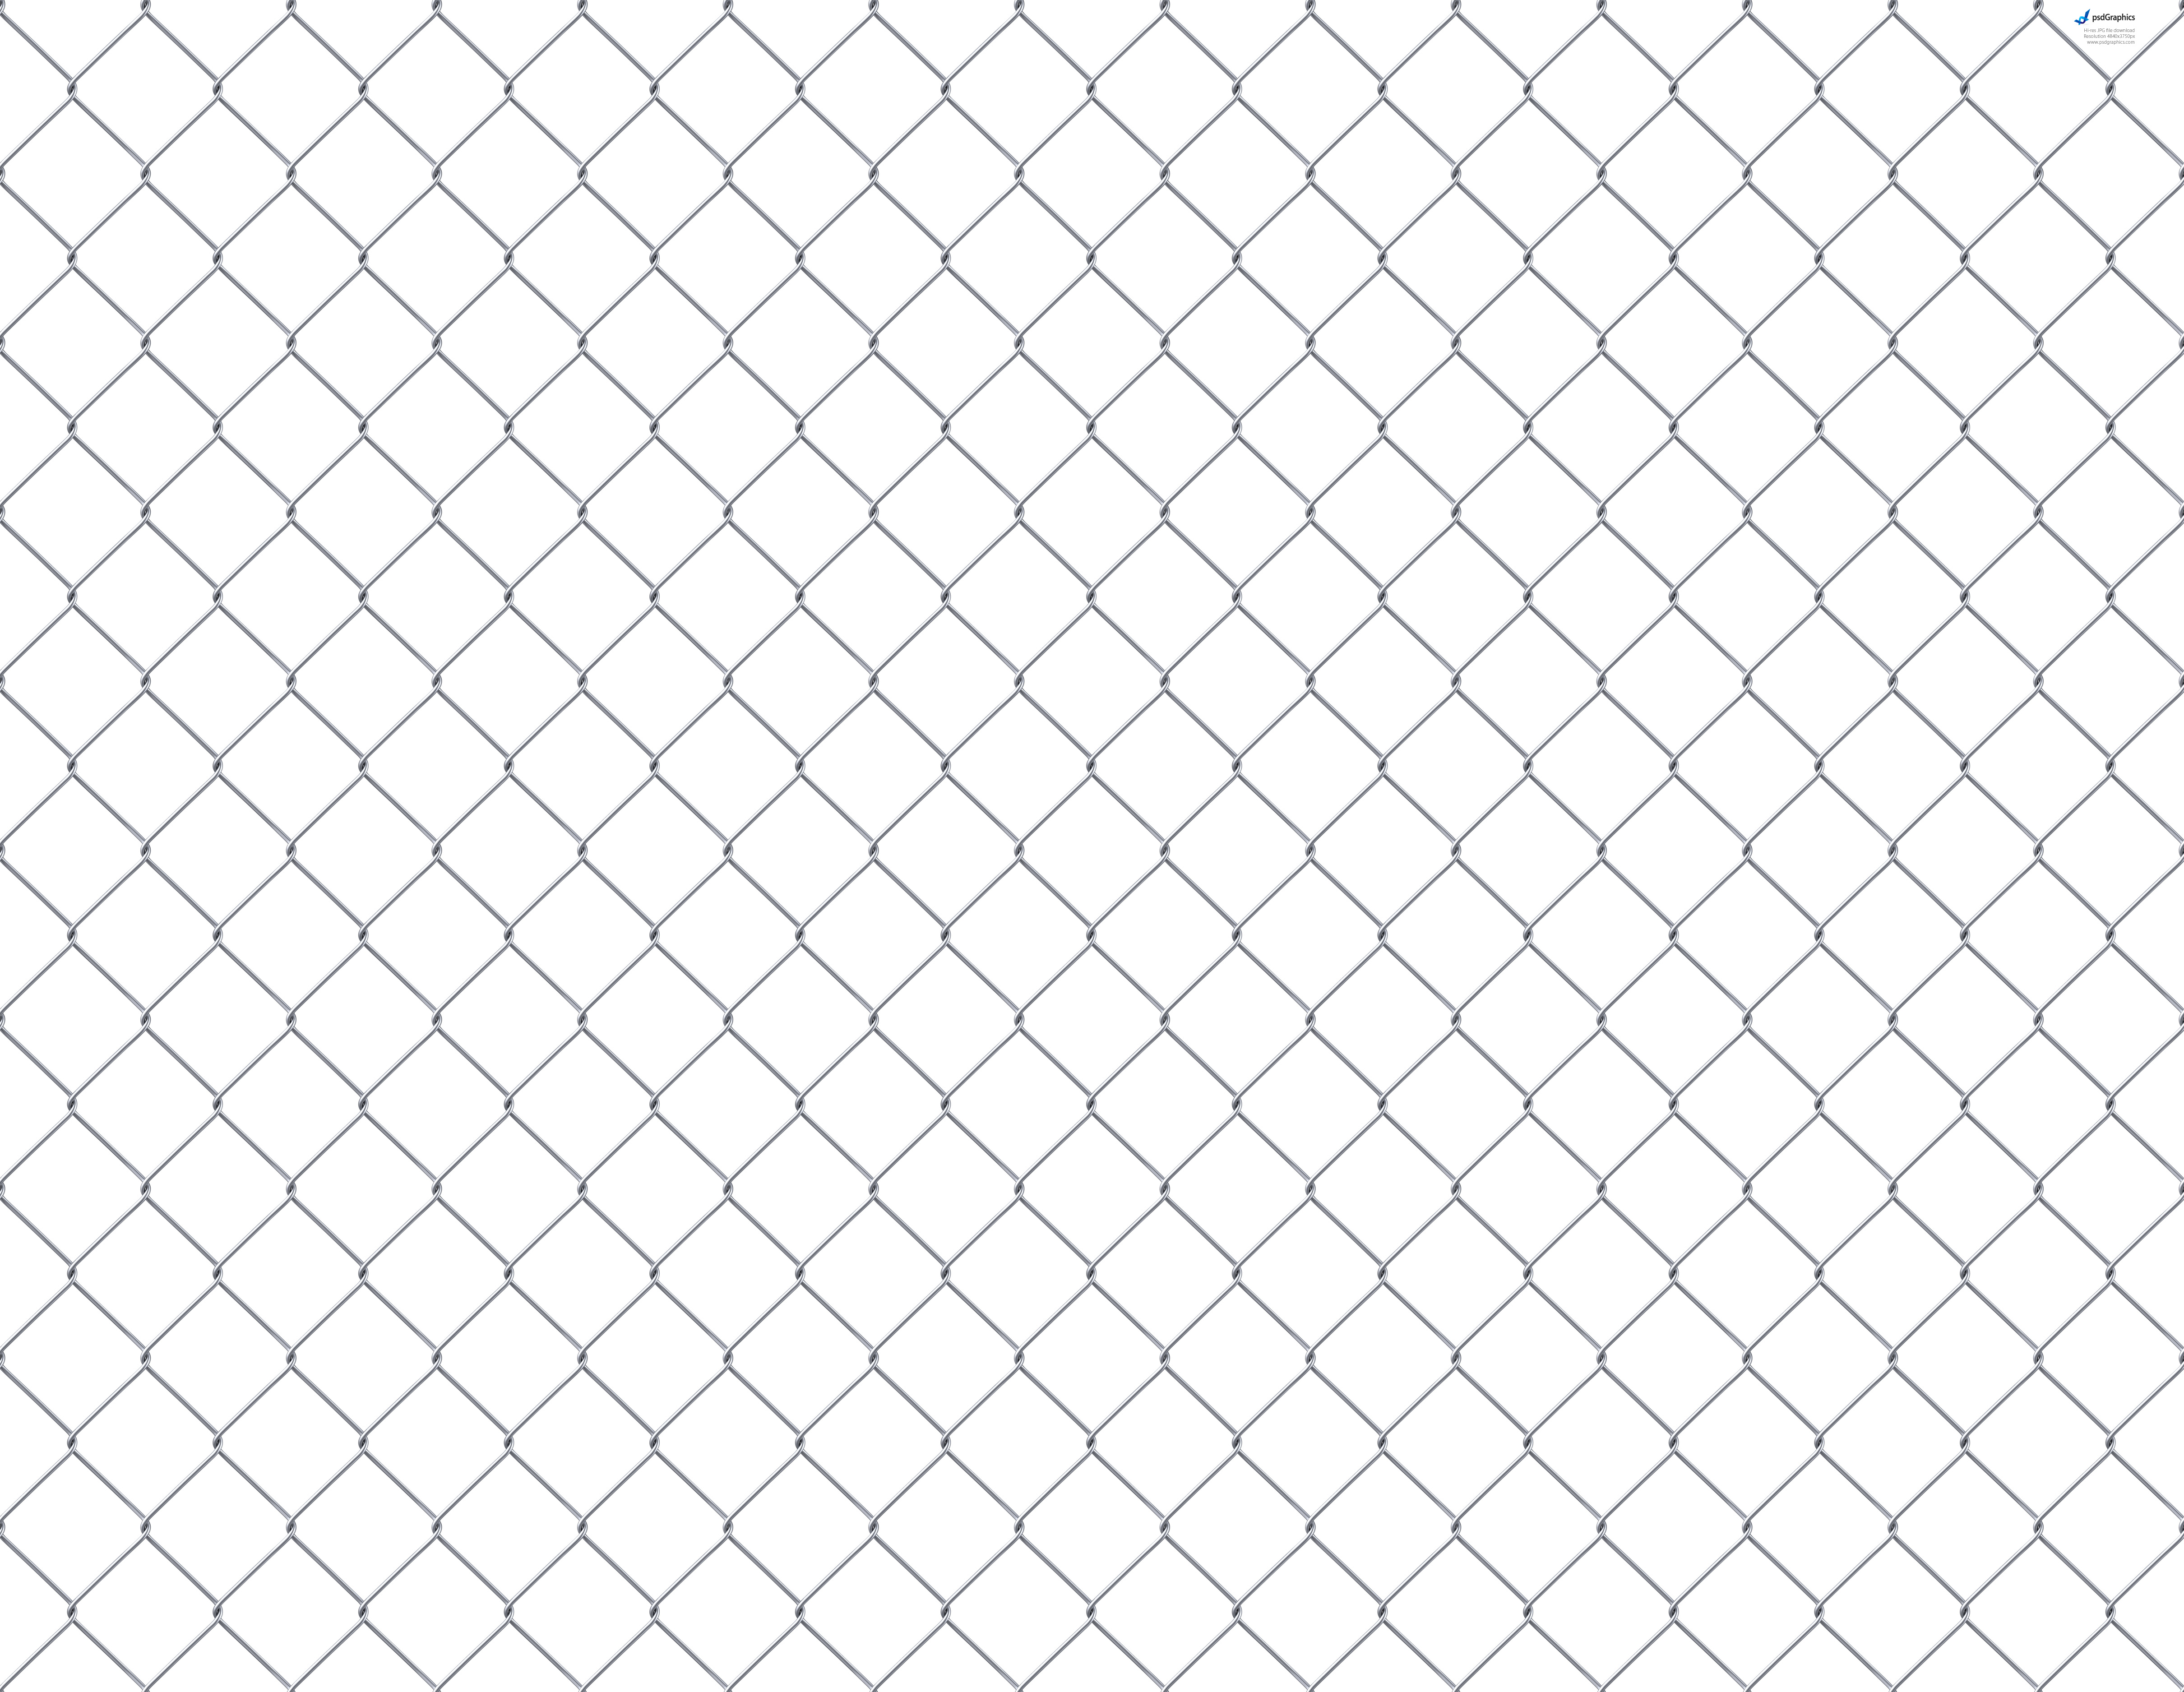 4840x3750 Fence Png Transparent Fence.png Images. Pluspng